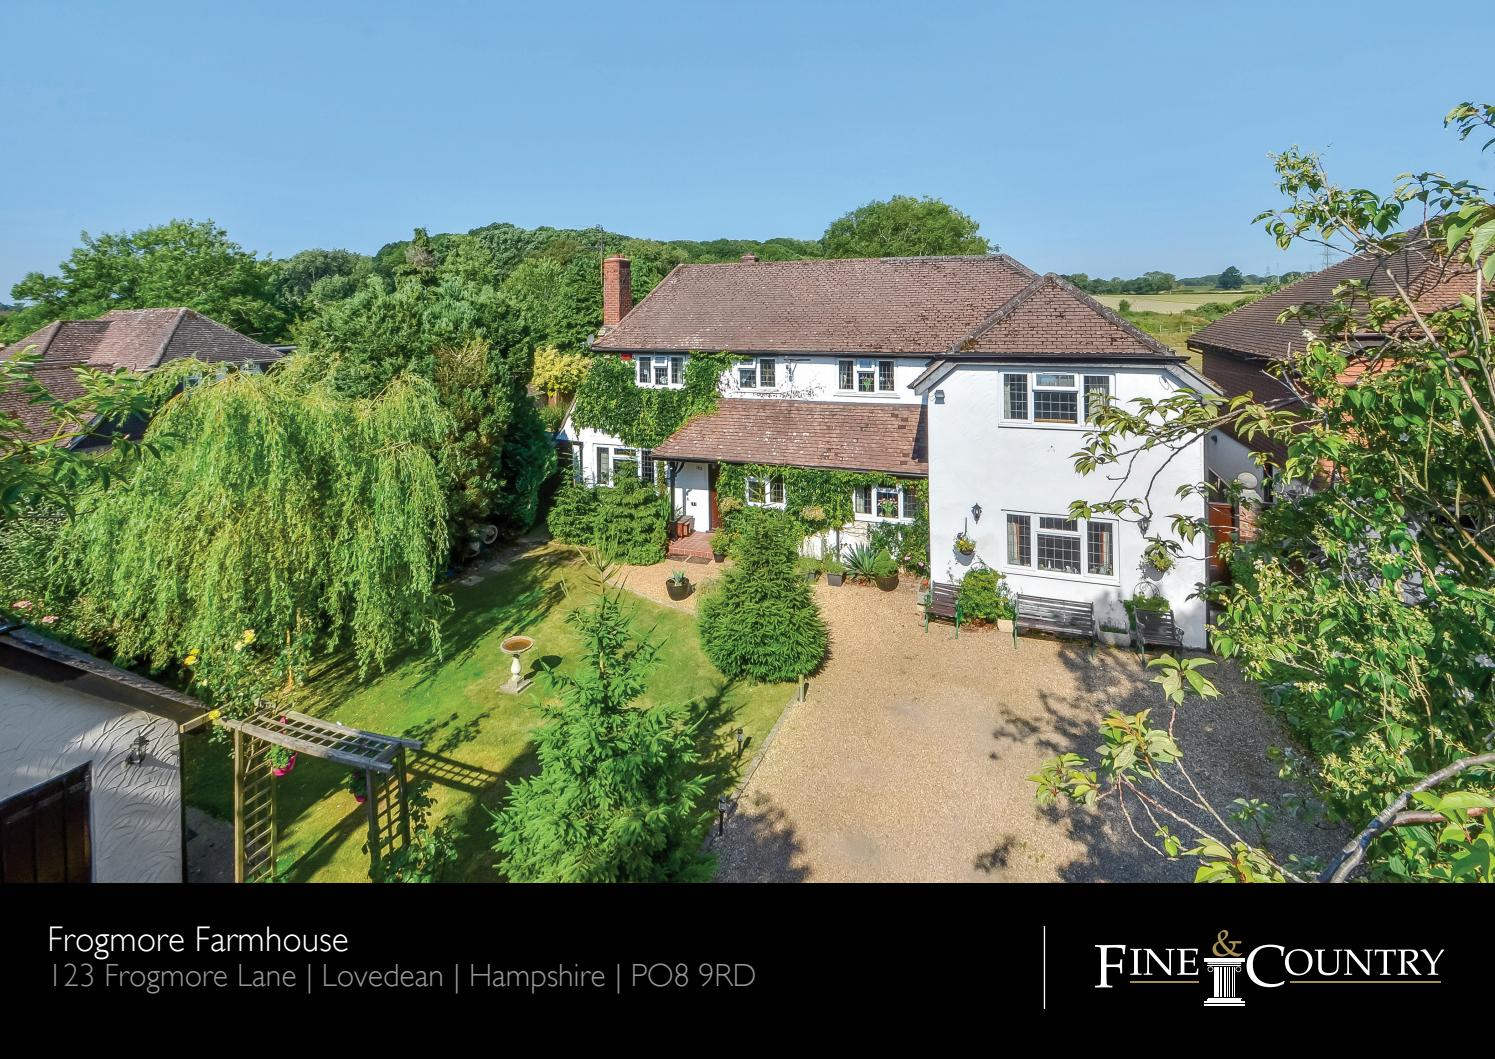 Lovedean, Waterlooville, Hampshire by Fine & Country - Issuu